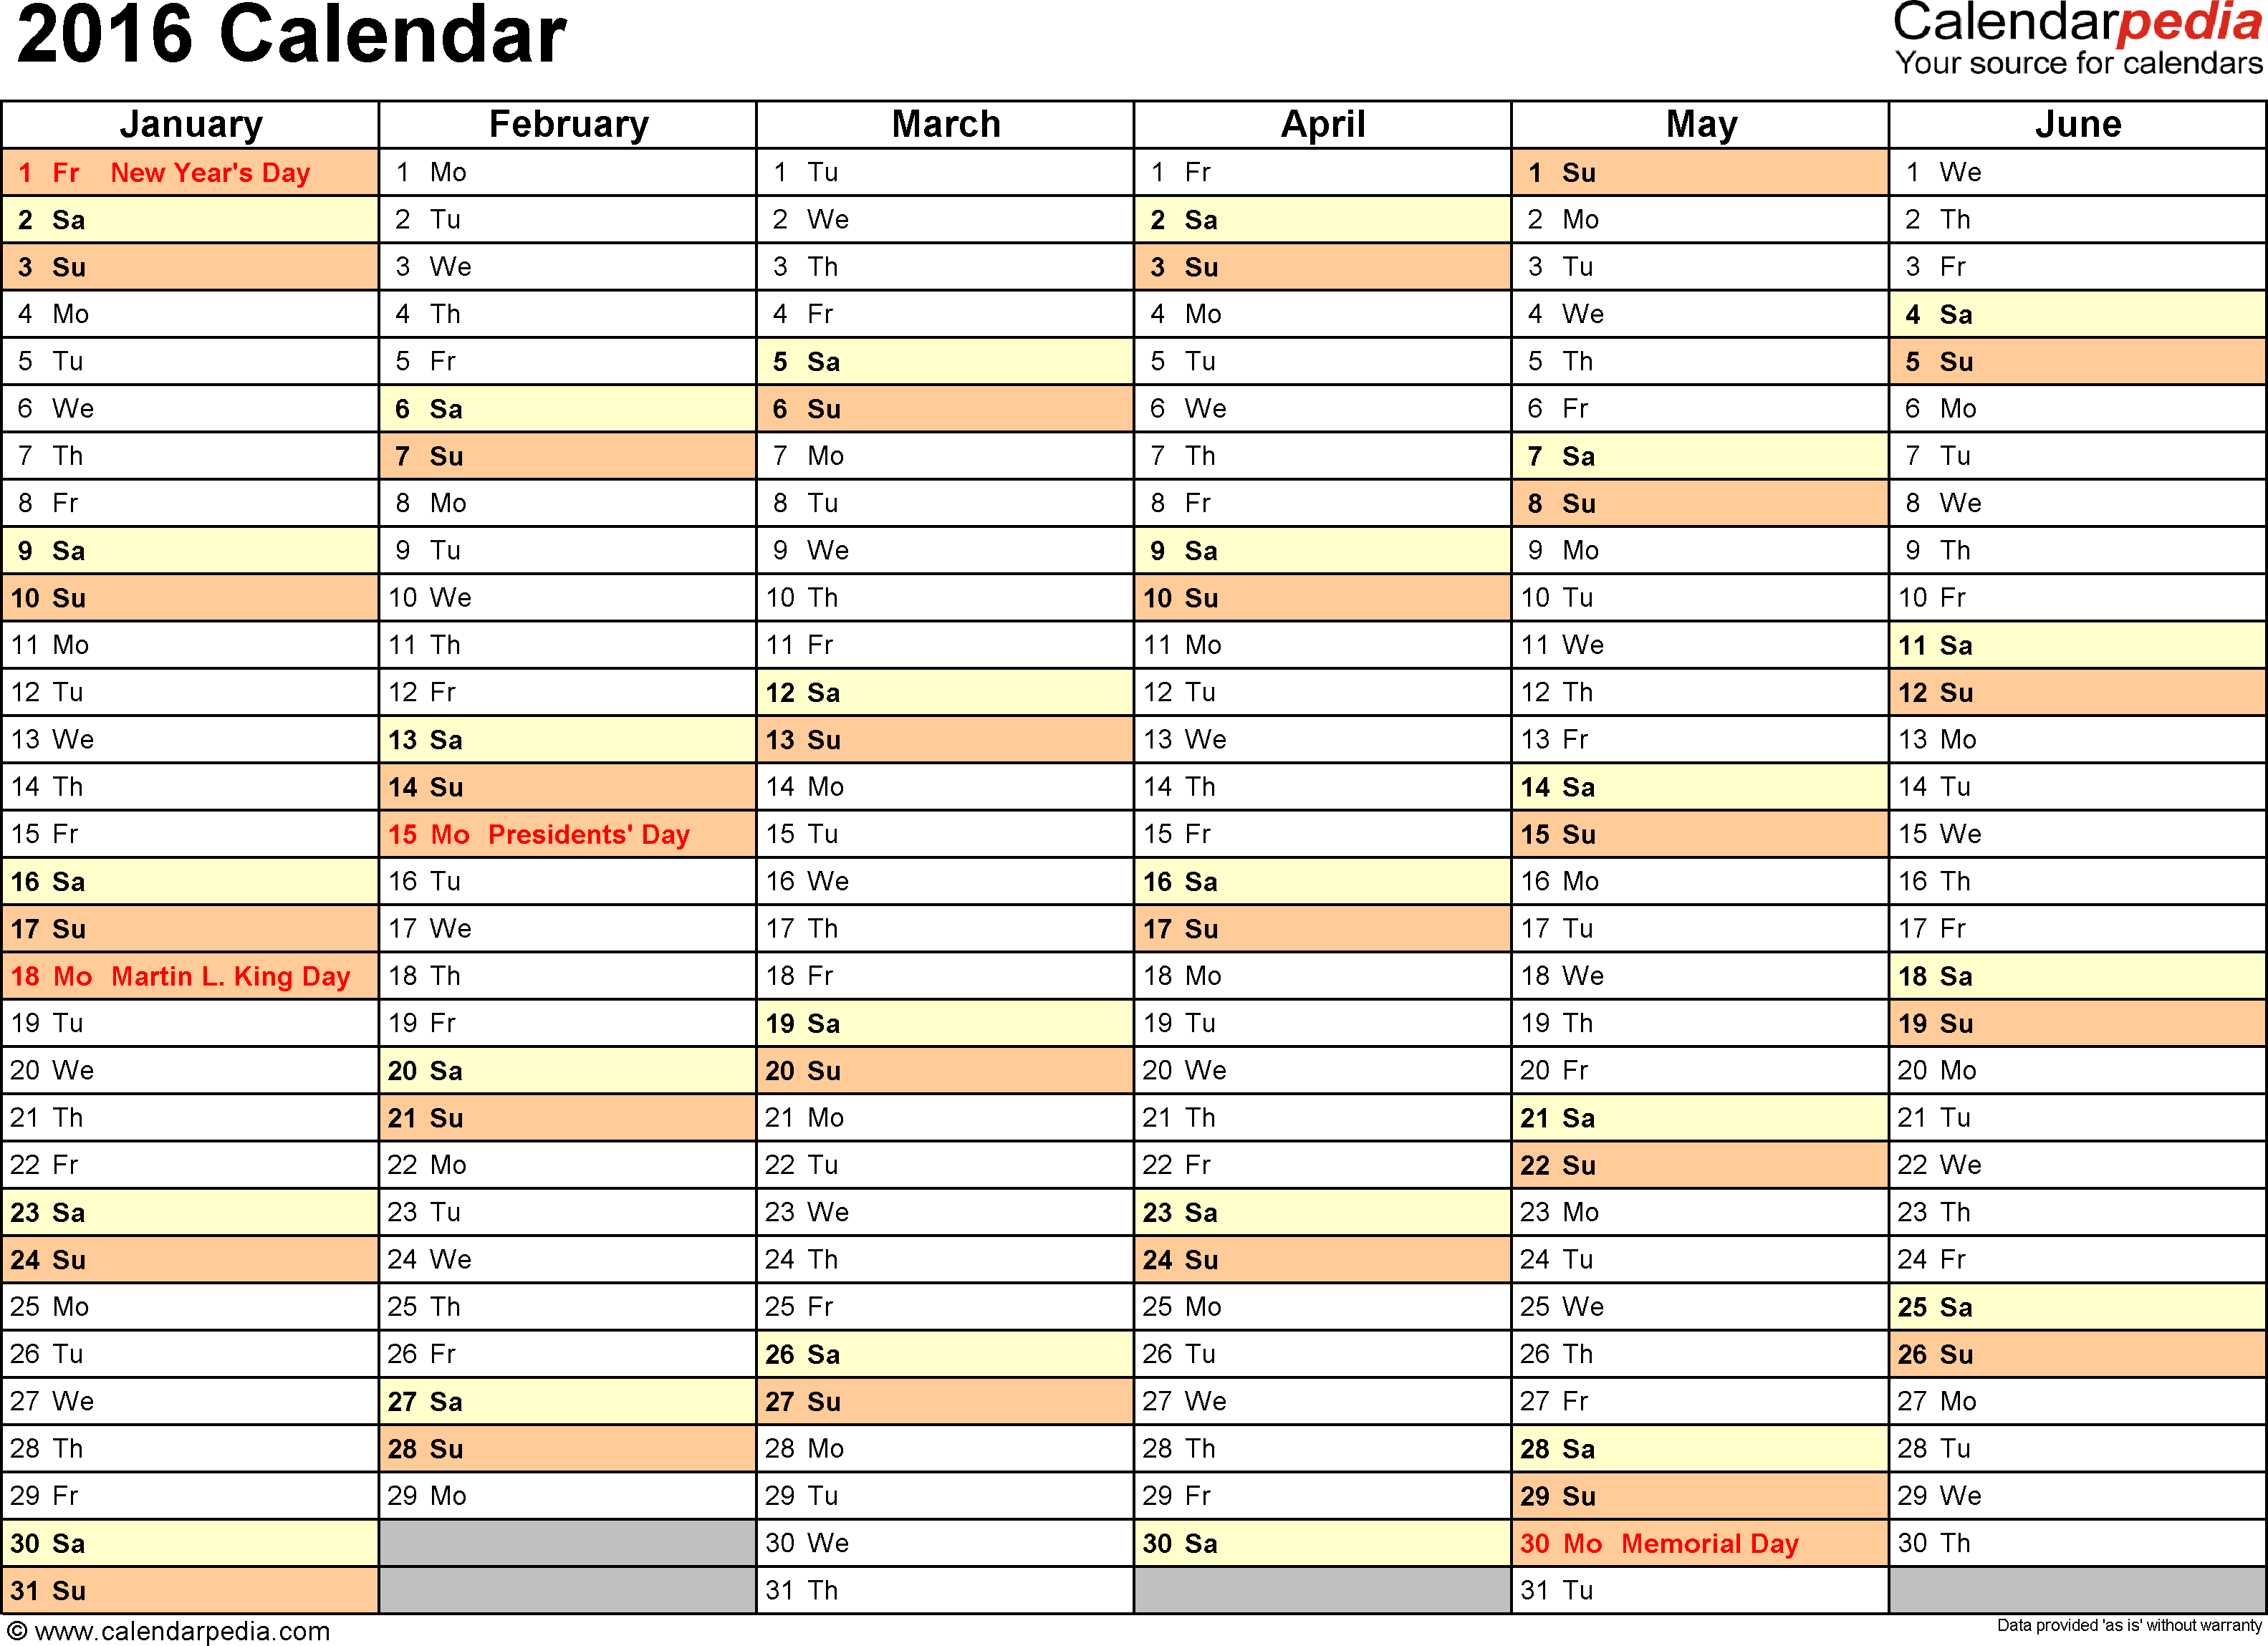 Ediblewildsus  Unusual  Calendar  Download  Free Printable Excel Templates Xls With Licious Template   Calendar For Excel Months Horizontally  Pages Landscape Orientation With Delectable Analysis Toolpak Excel  Also Excel Name A Range In Addition How To Set Up An Excel Spreadsheet And Inverse Tan In Excel As Well As Xlerator Excel Dryer Additionally Excel Show Formulas Shortcut From Calendarpediacom With Ediblewildsus  Licious  Calendar  Download  Free Printable Excel Templates Xls With Delectable Template   Calendar For Excel Months Horizontally  Pages Landscape Orientation And Unusual Analysis Toolpak Excel  Also Excel Name A Range In Addition How To Set Up An Excel Spreadsheet From Calendarpediacom